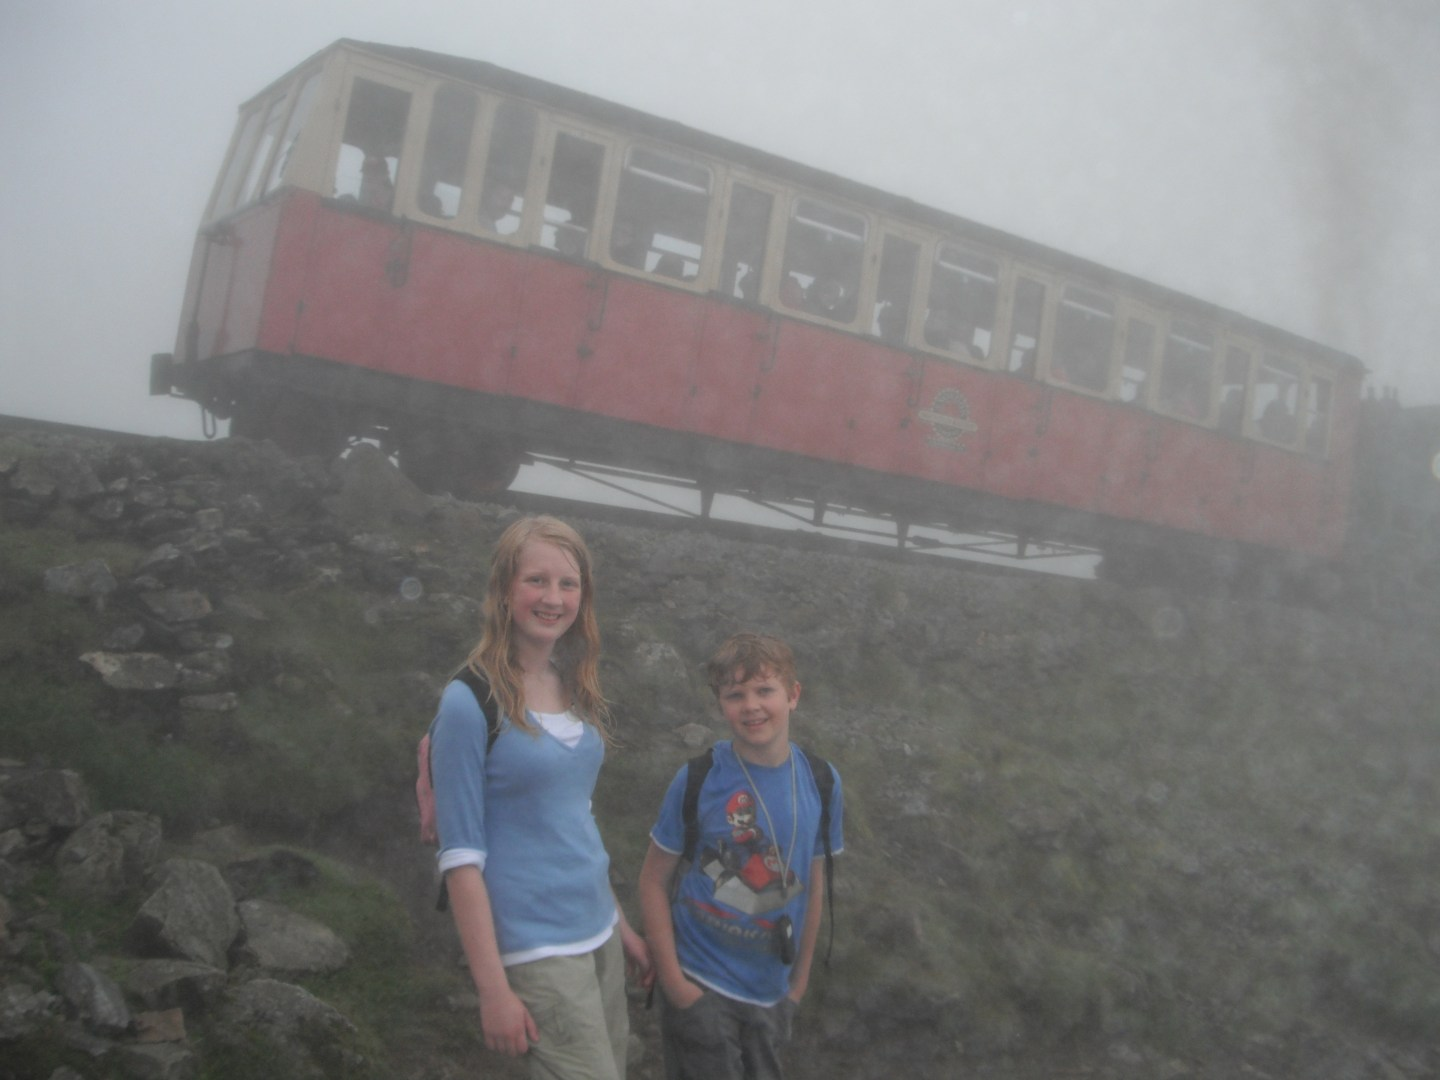 Xene and Lochlan with tyhe Mount Snowdon train in the background